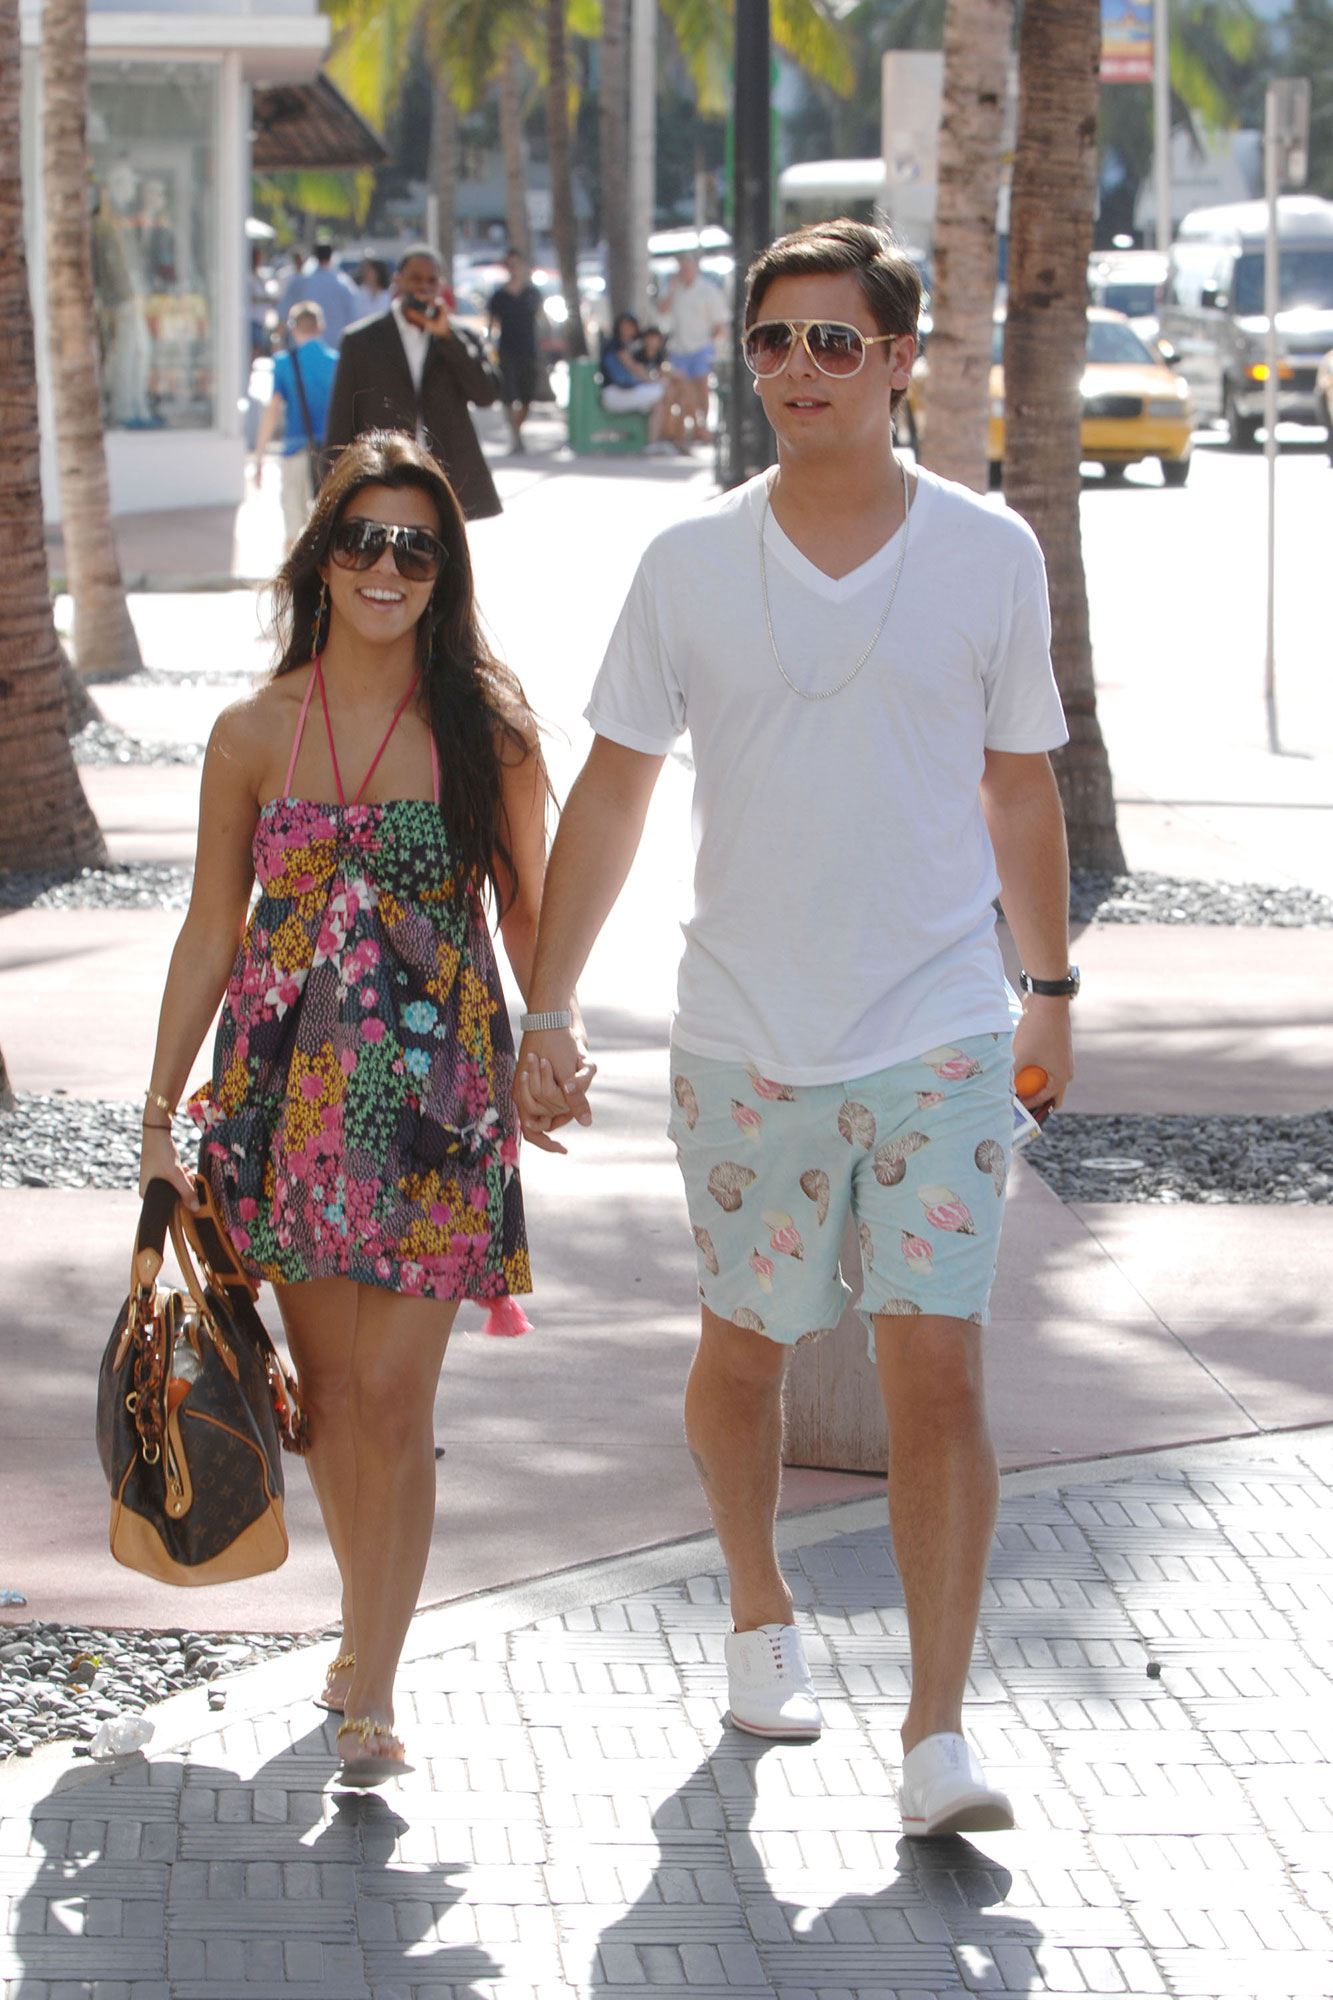 Kourtney Kardashian and Scott Disick - Our lives were forever changed in October 2007 when Keeping Up With the Kardashians debuted on E!, introducing the world to the famous Kardashian clan — including Kourtney's then-boyfriend, Scott.